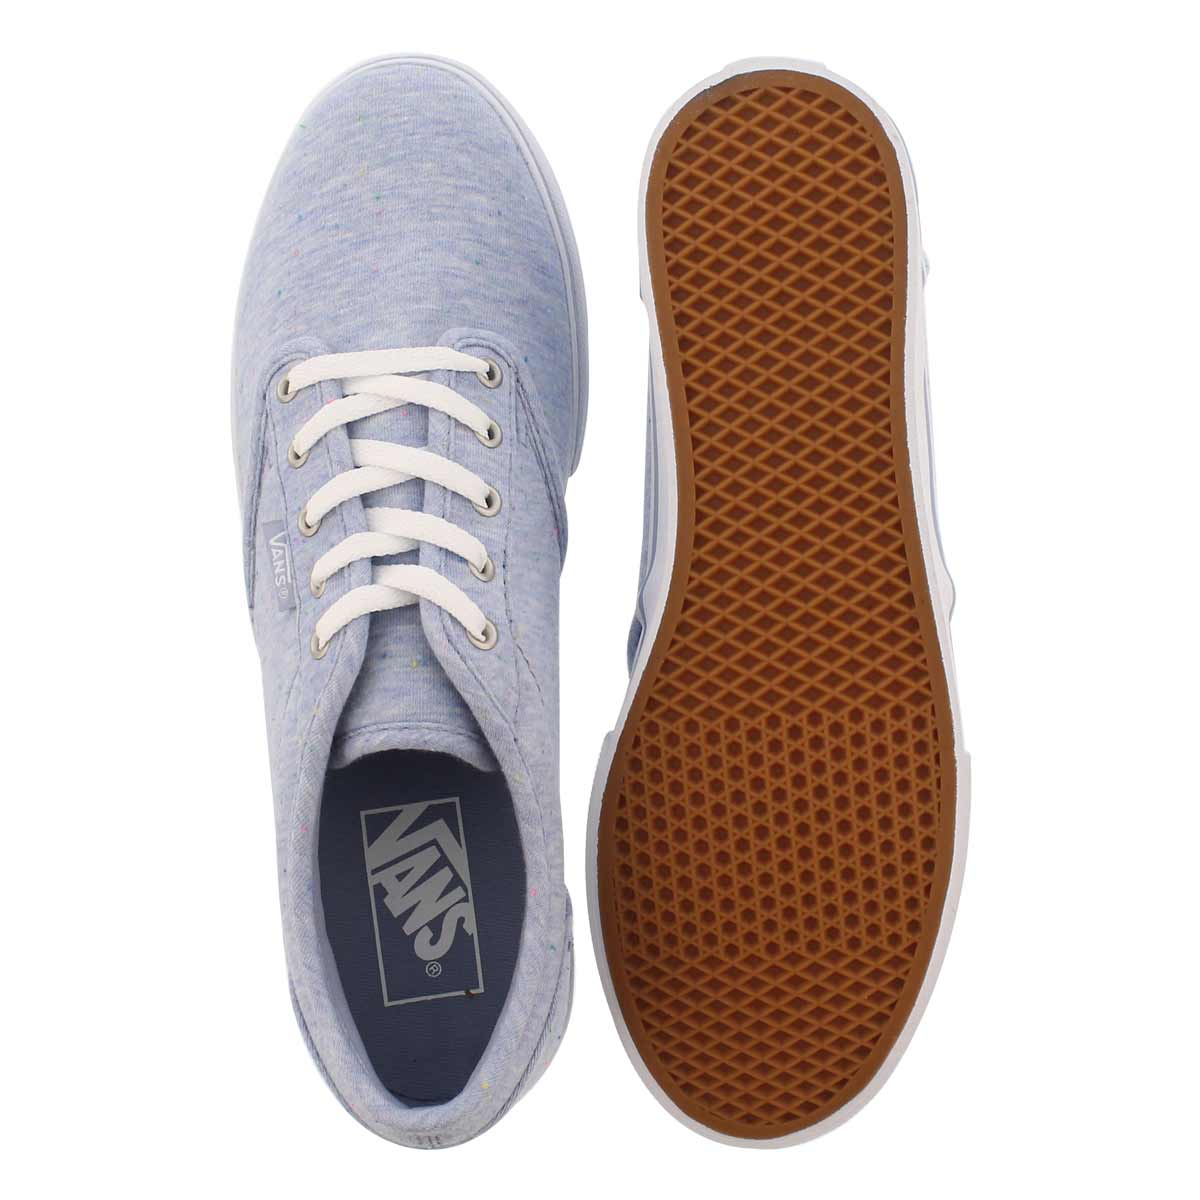 Lds Atwood Low speckle blue laceup snkr